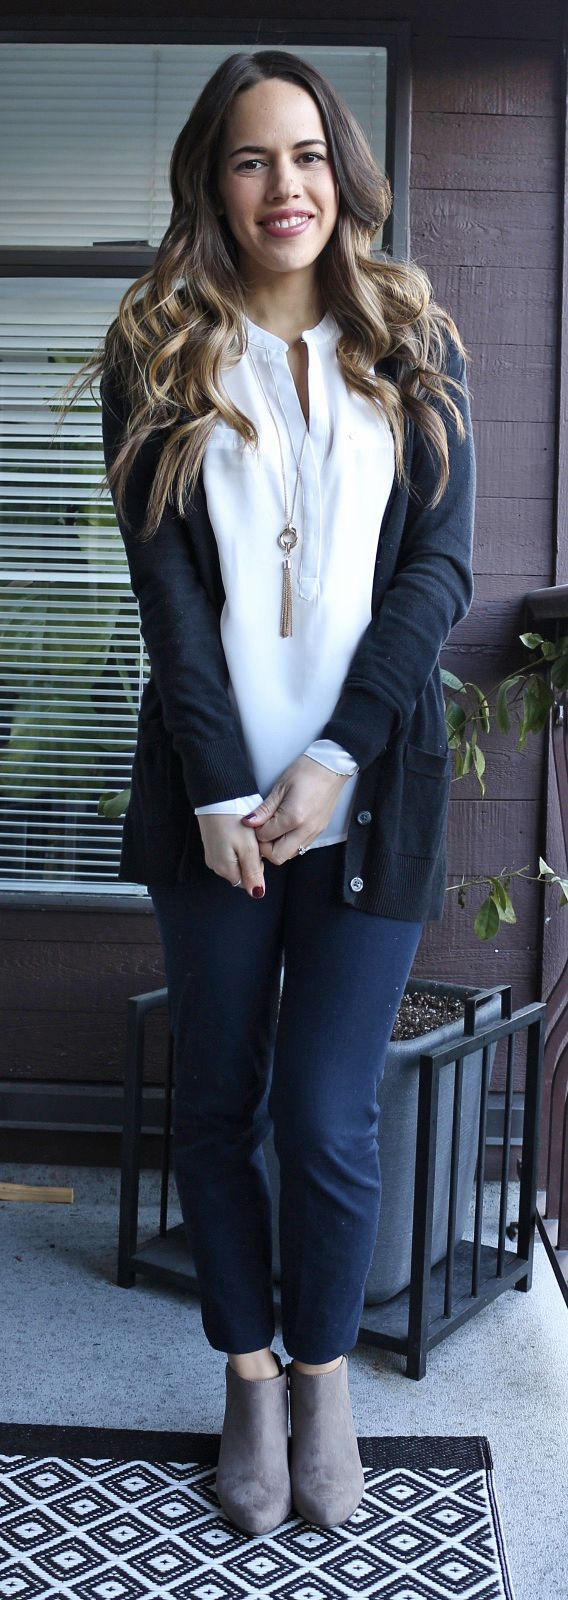 Jules in Flats - Old Navy Pixie Pants and Sueded Booties, Dynamite blouse, Gap cardigan